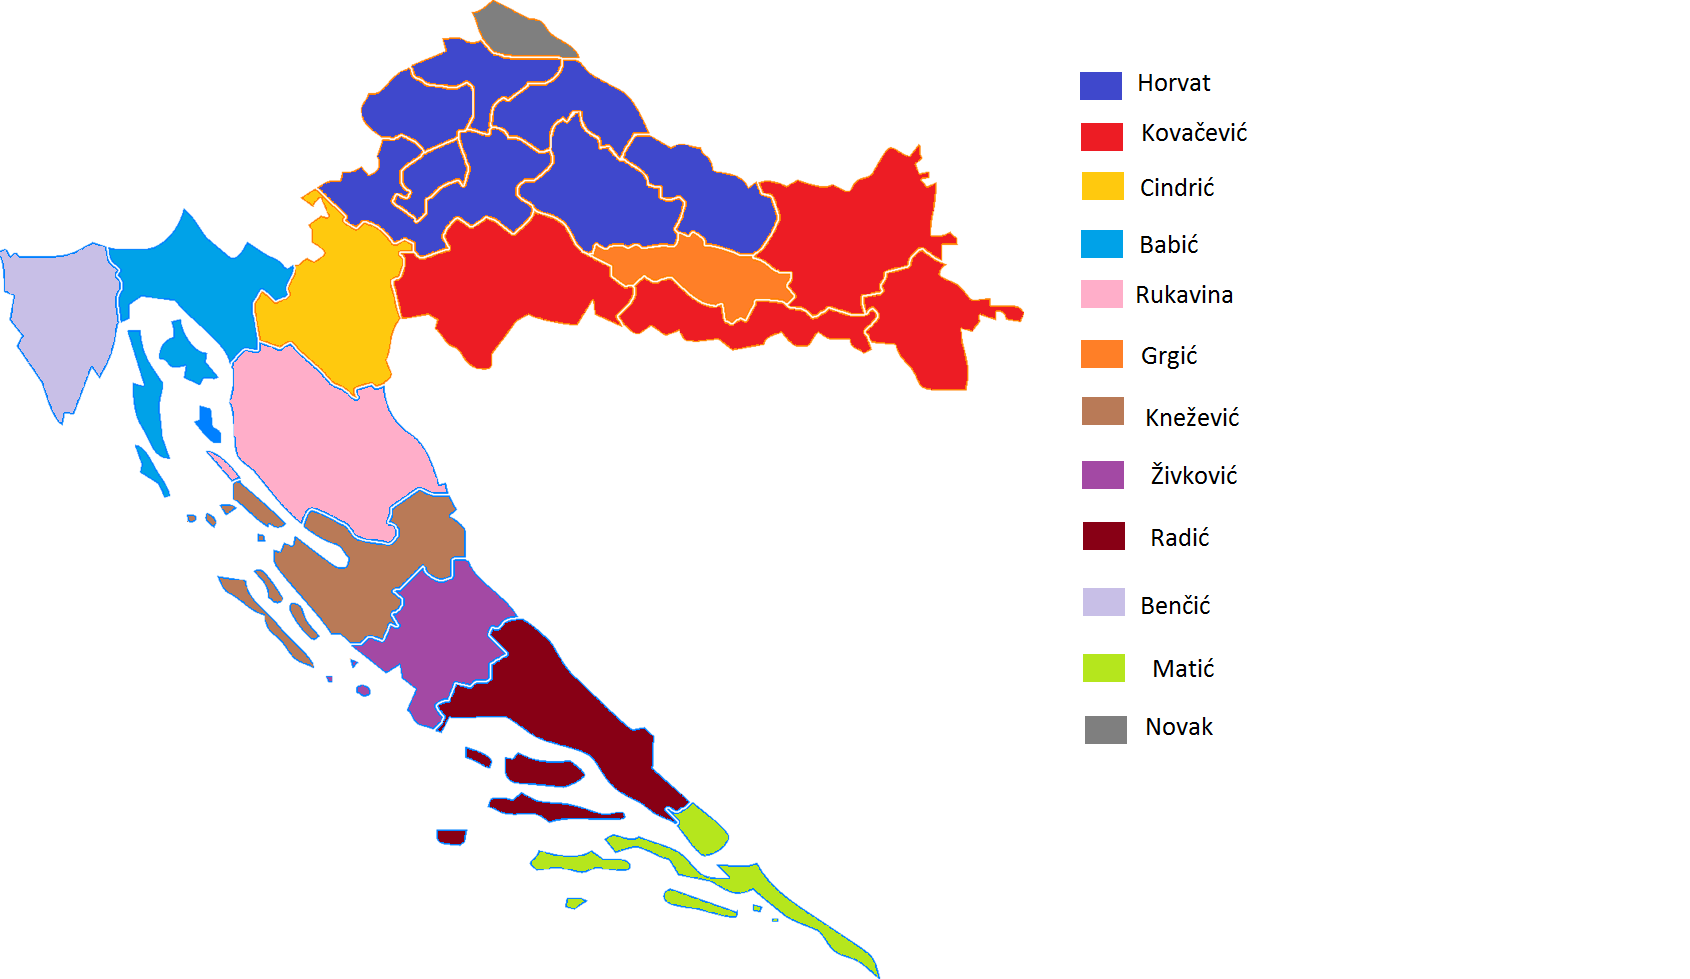 The Most Frequent Croatian Family Names By County